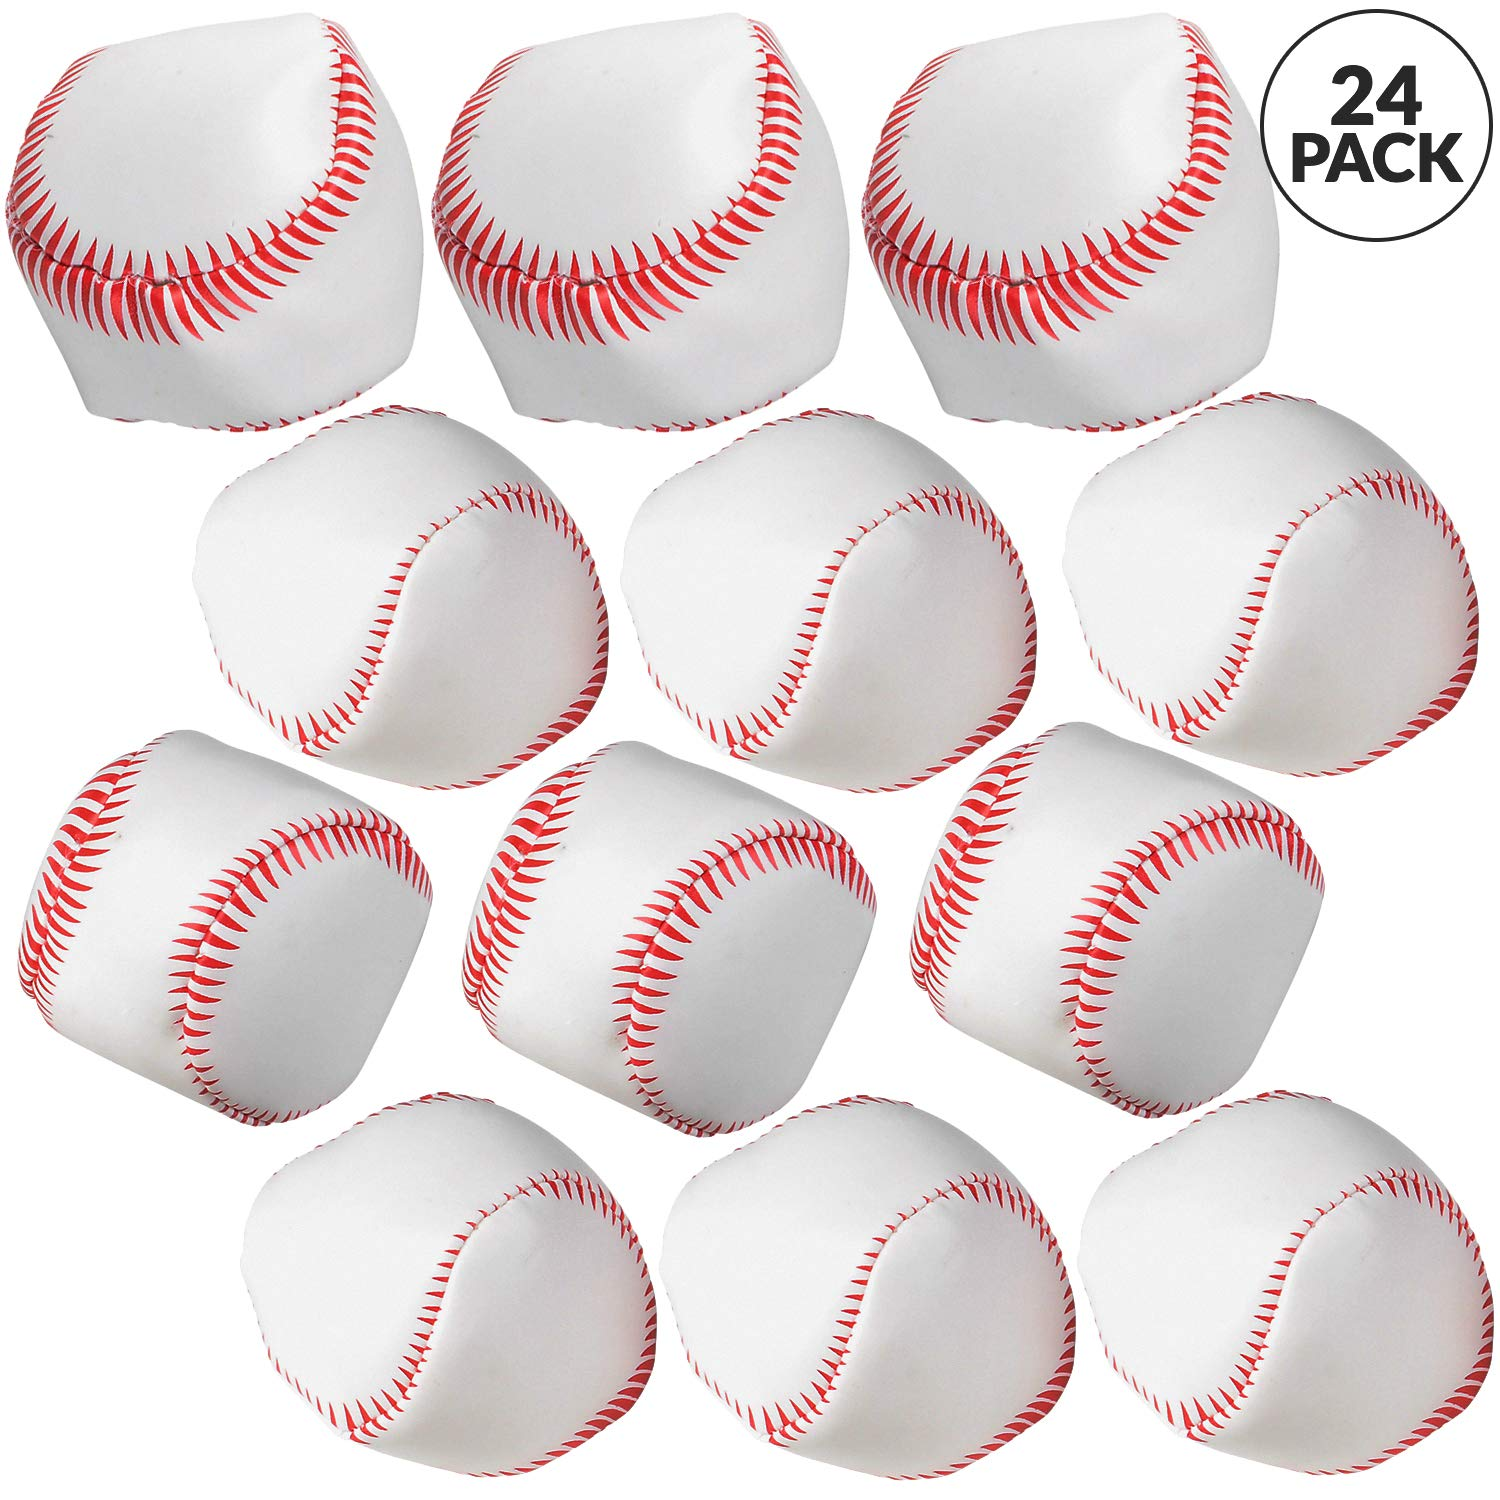 Bedwina Mini Soft Baseballs - Pack of 24 Bulk - 2'' Sports Themed Foam Baseball Toys and Squeeze Stress Relief Balls, Party Favor Supplies & Gifts for Kids by Bedwina